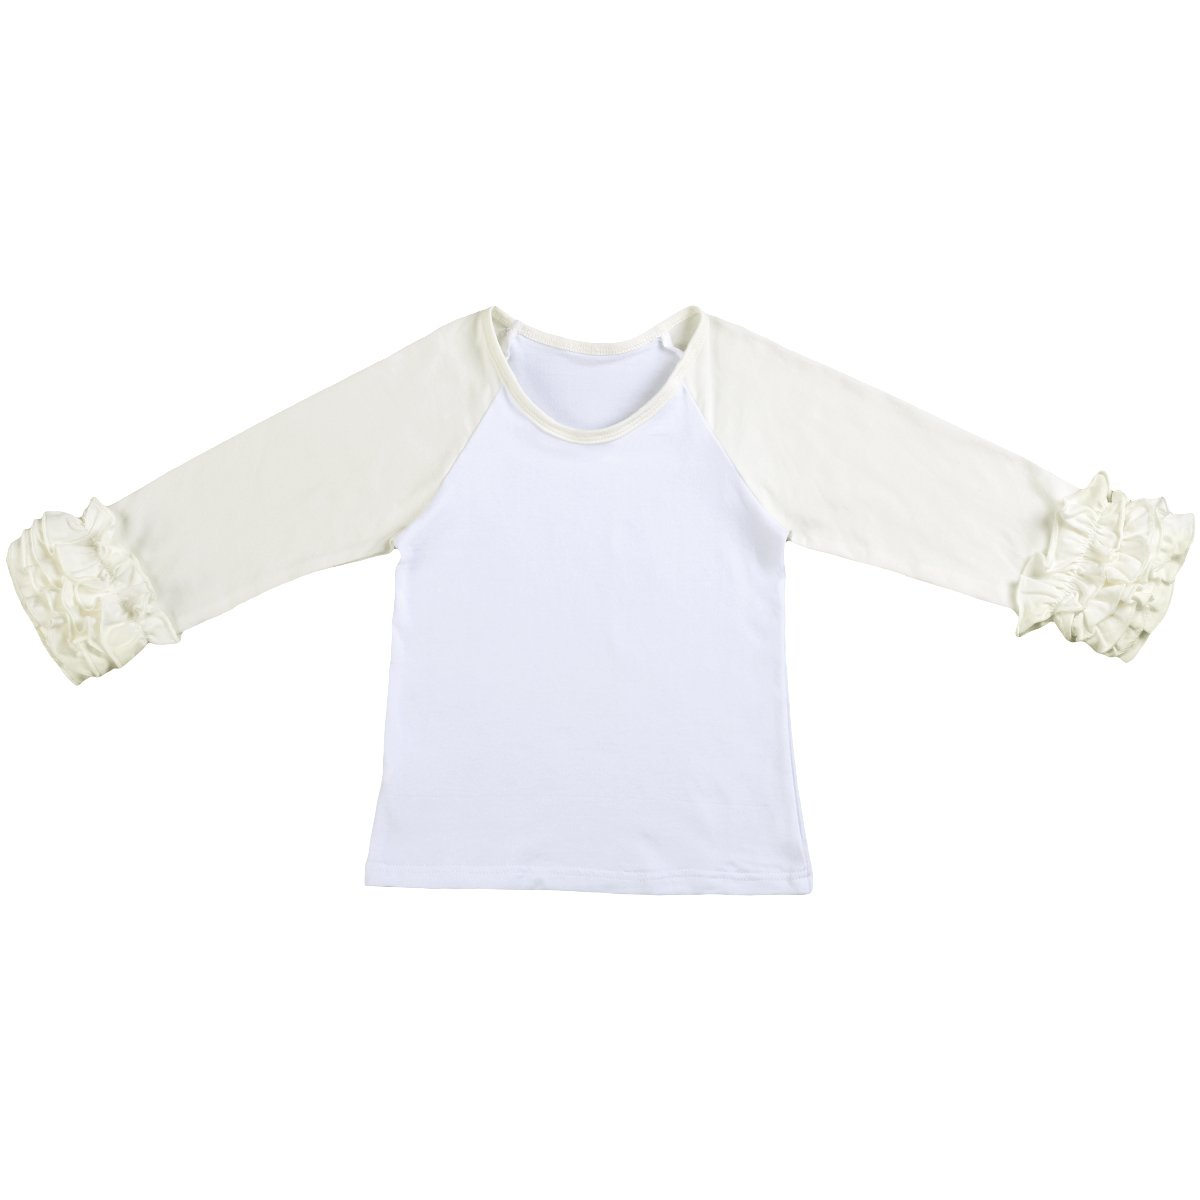 Baby Accessories New Cute Baby Kids Girls Top Cotton Long Sleeved Glittery Party Casual Tops